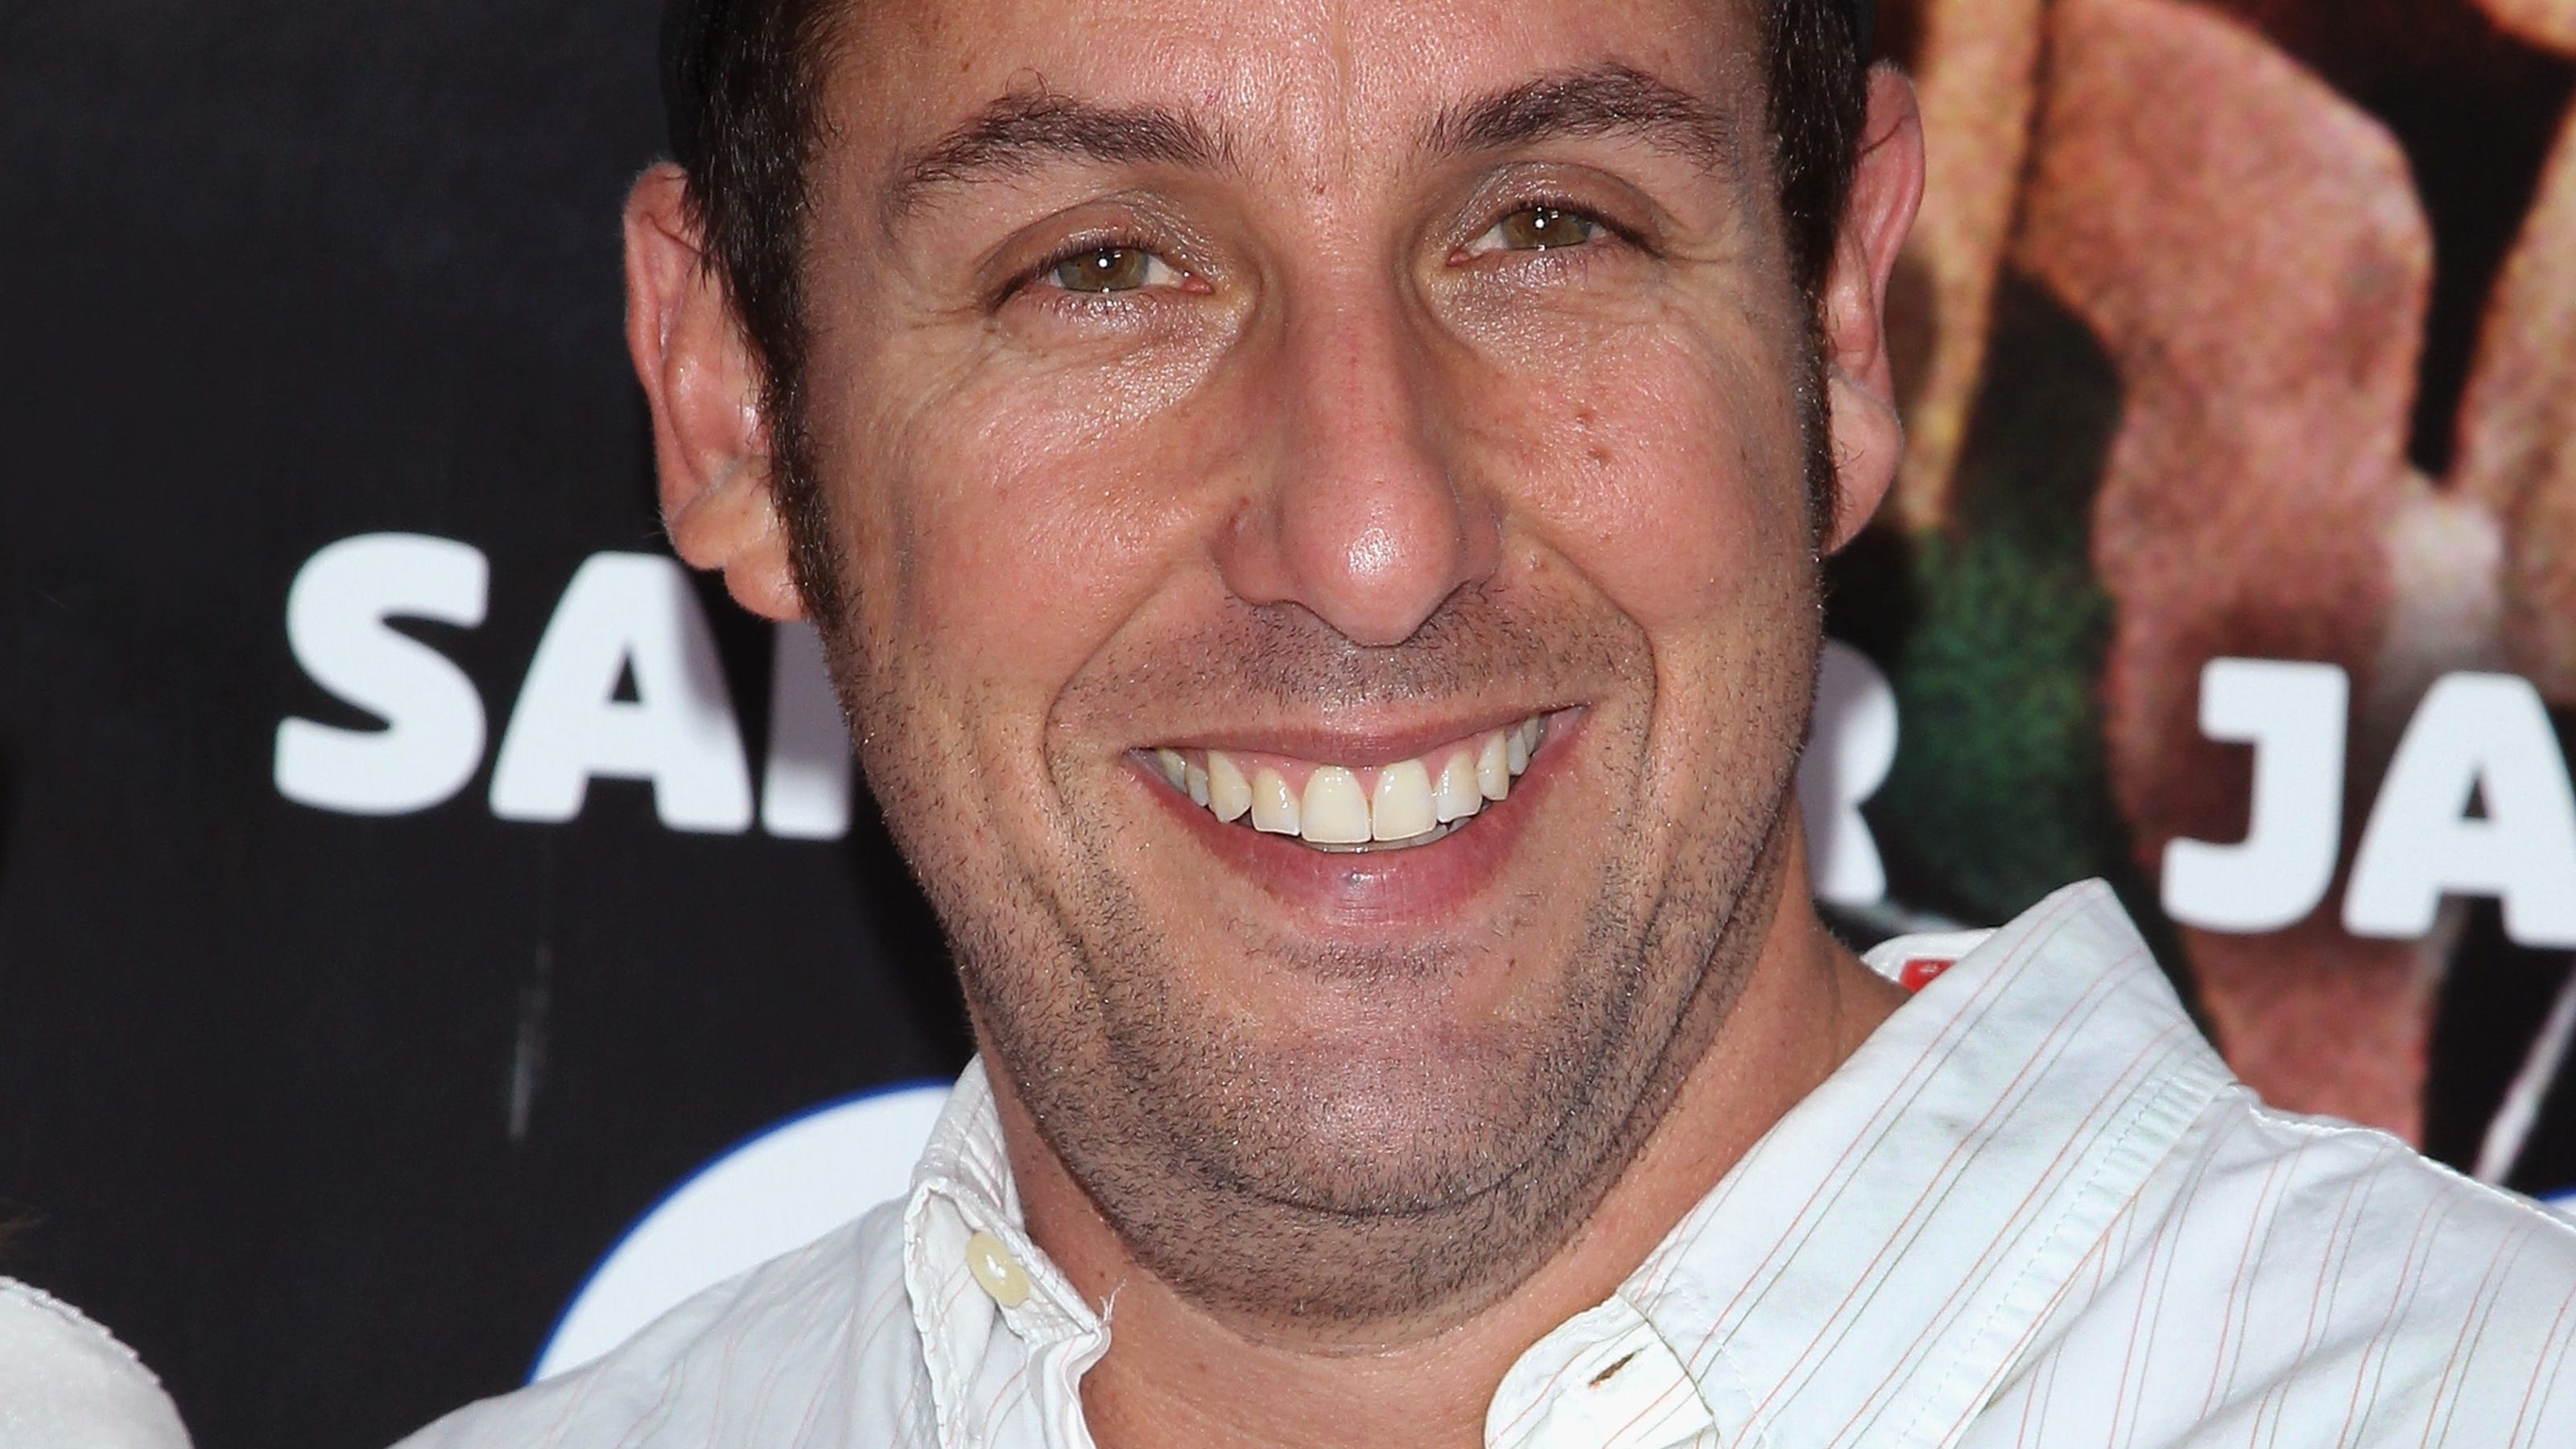 adam sandler college In 1993, adam sandler appeared in the film coneheads with chris farley, david spade, dan aykroyd, phil hartman (2007), a drama about a man who loses his entire family in 9/11 and rekindles a friendship with his old college roommate.